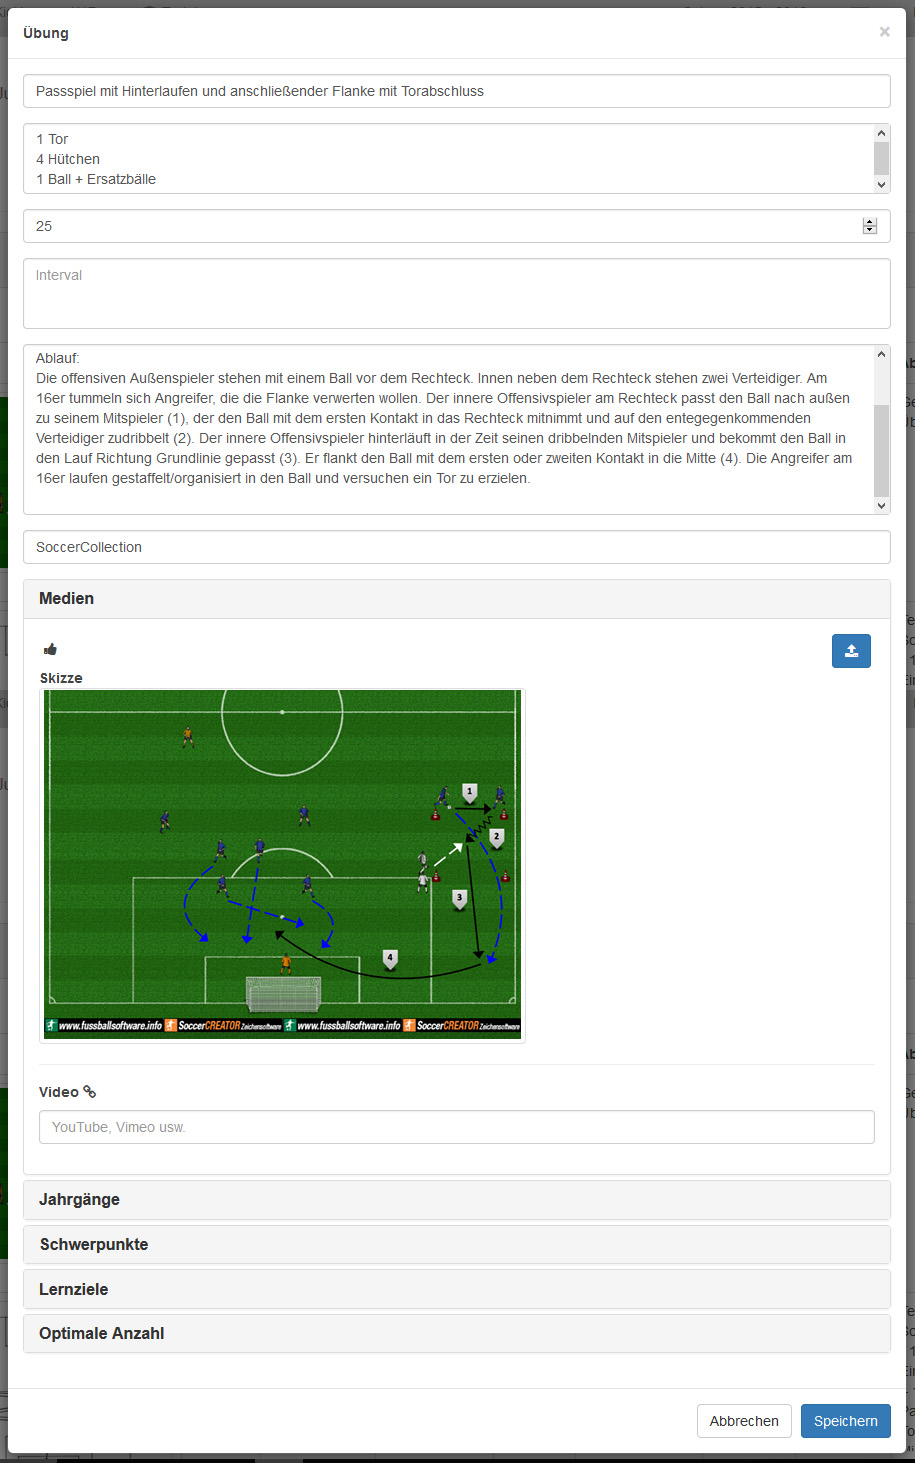 SoccerWEB 2.0: Das Trainingsmodul ist online - SoccerCollection oHG